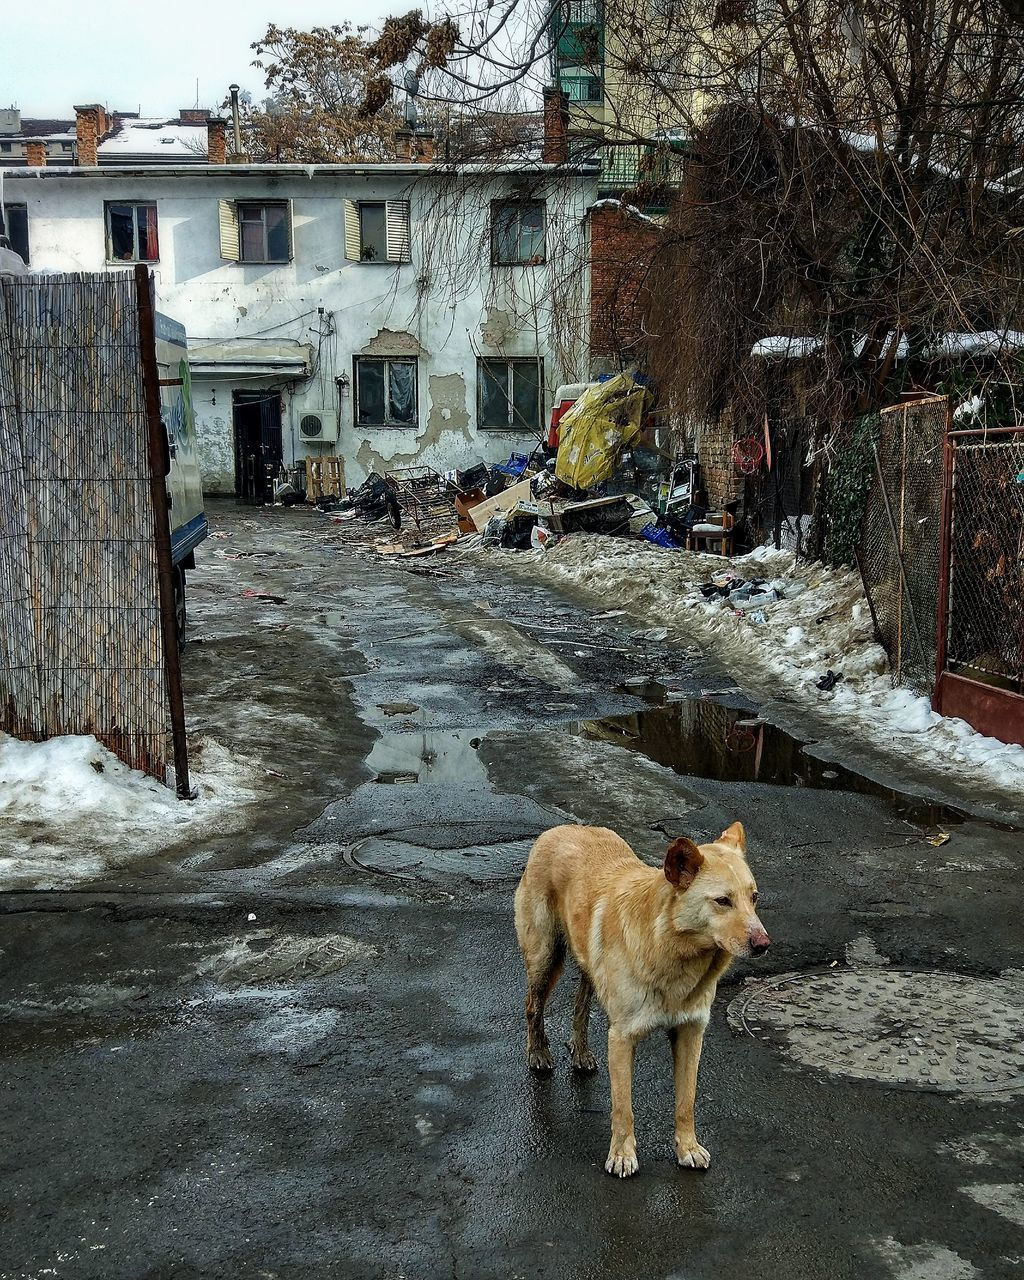 dog, pets, one animal, domestic animals, animal themes, mammal, built structure, architecture, winter, building exterior, outdoors, cold temperature, snow, day, no people